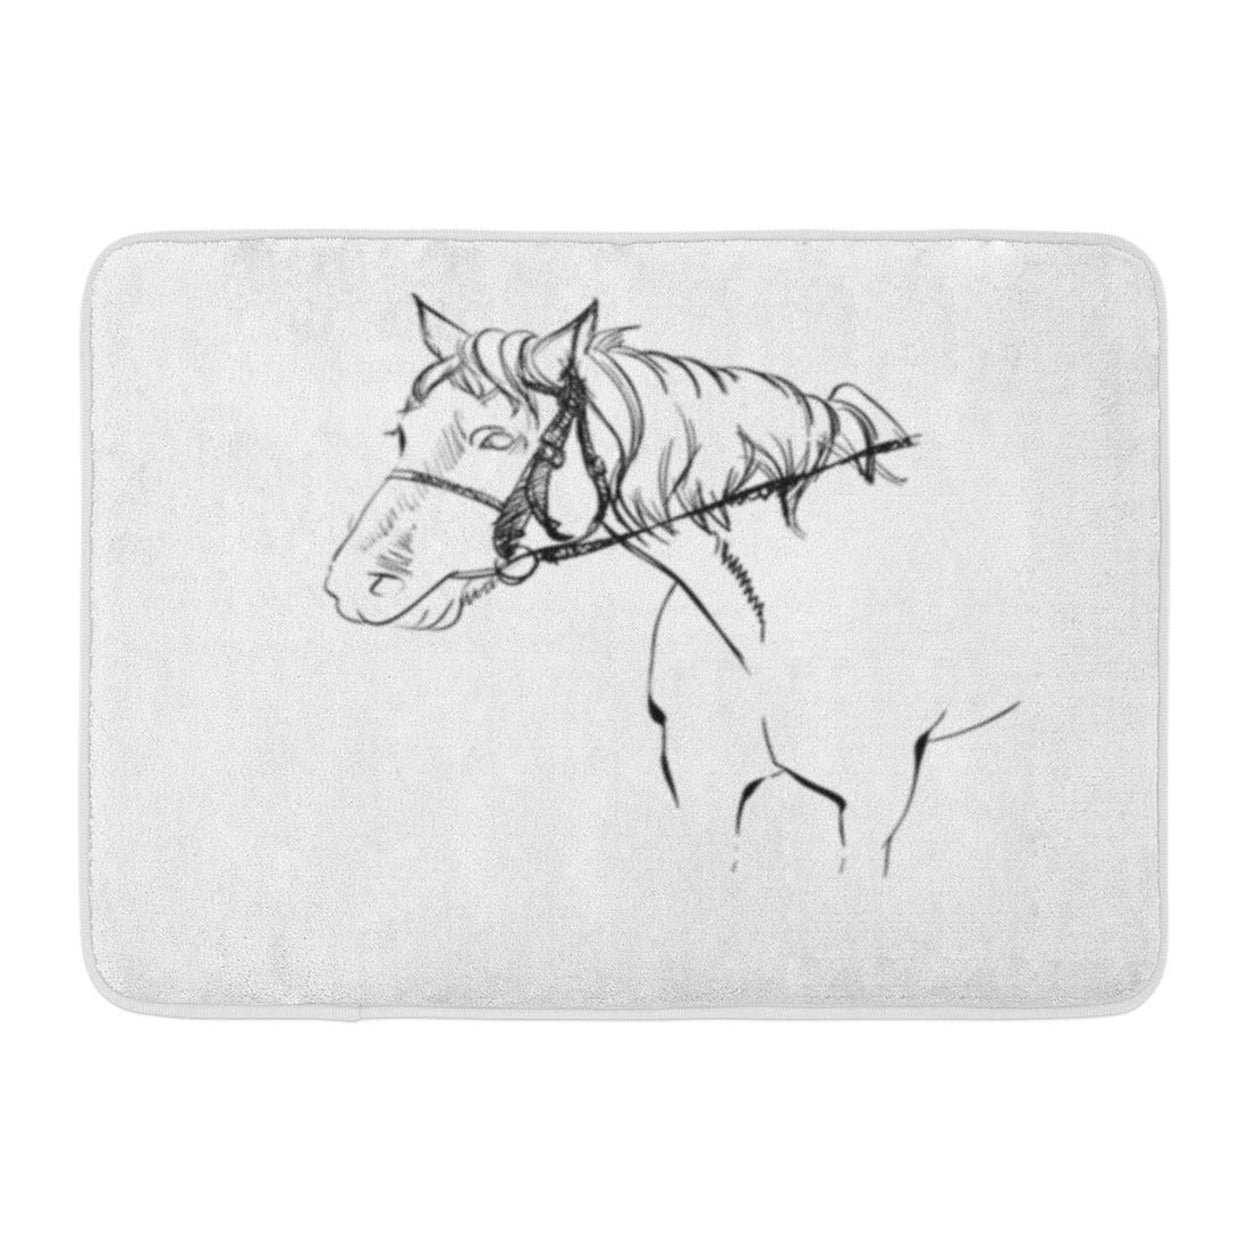 Adorable Horse Harness Sketched Cute Equine Freehand Doormat Floor Rug Bath Mat 23 6x15 7 Inch Multi On Sale Overstock 31777657